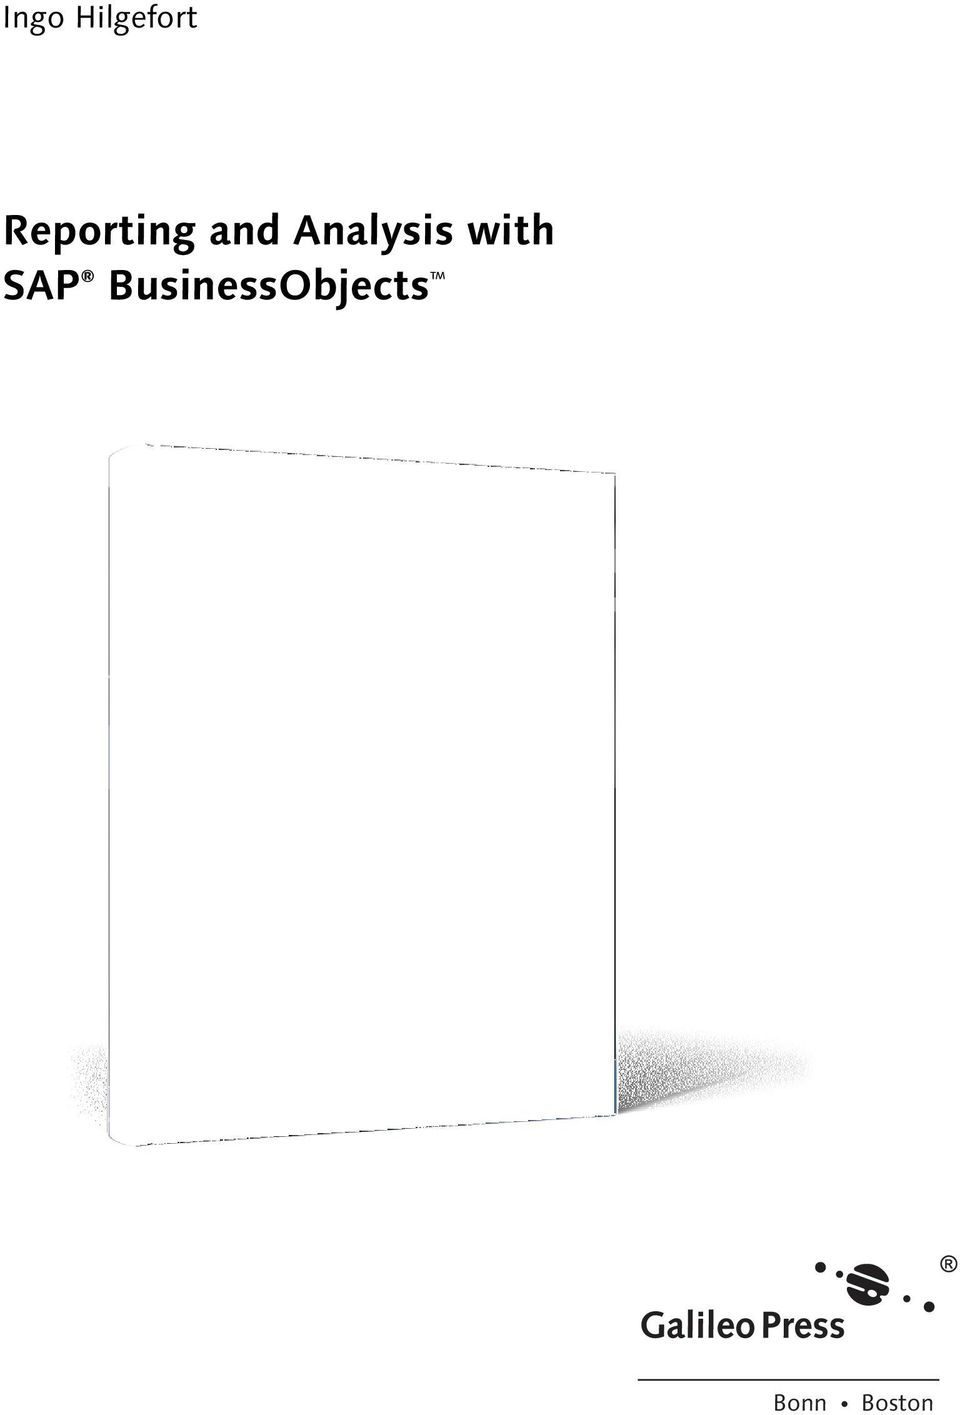 Analysis with SAP